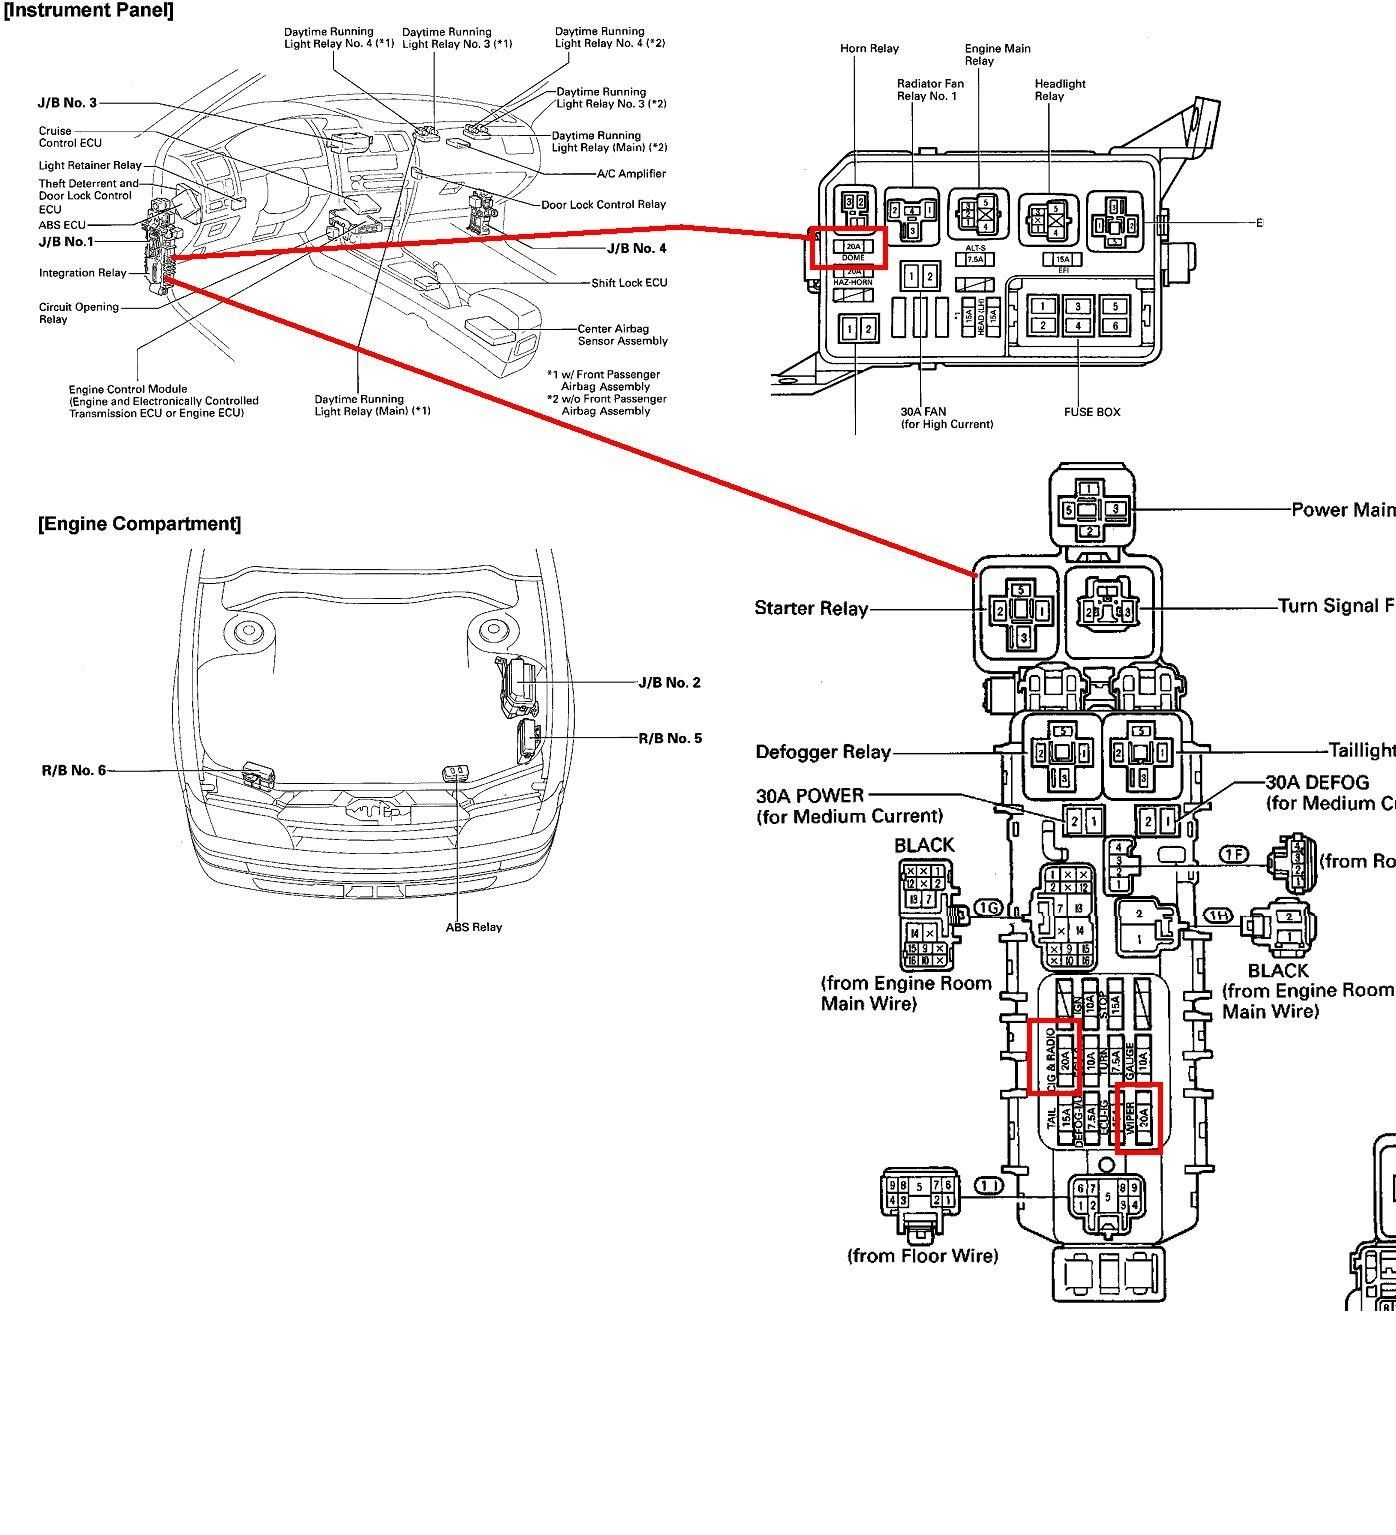 hight resolution of 1994 toyota corolla thermostat diagram data wiring diagrams for 2009 toyota corolla wiring diagram